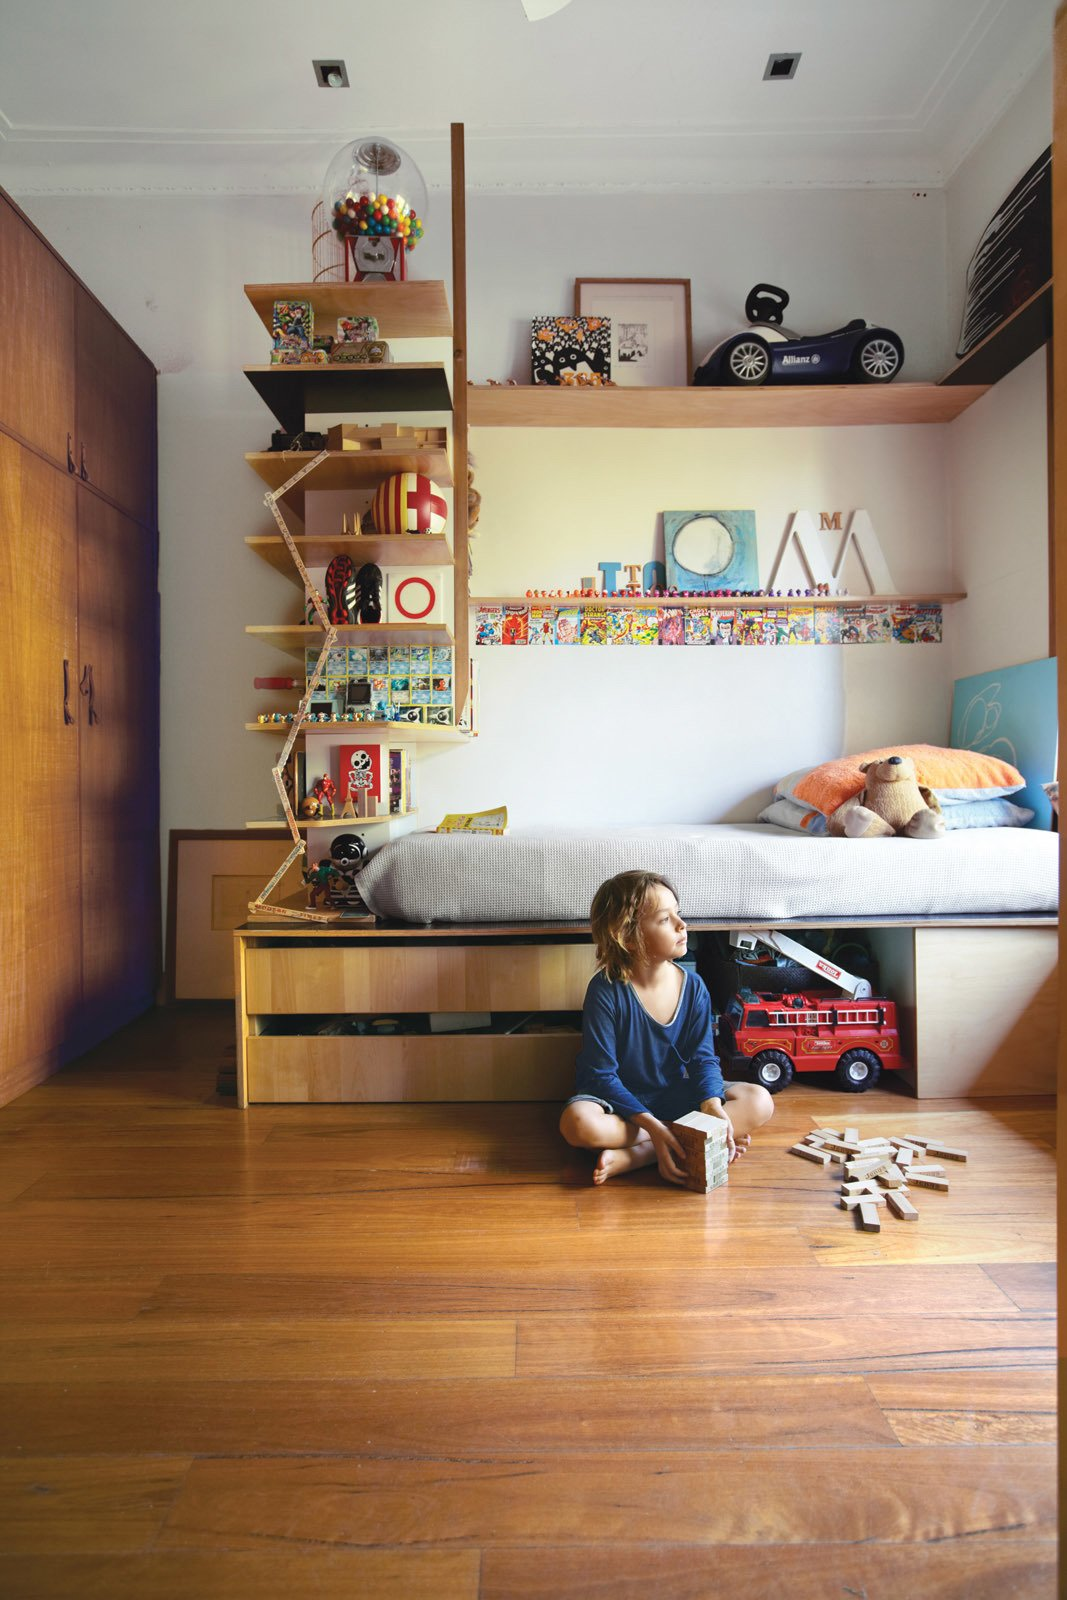 Kids Room, Bedroom Room Type, Shelves, Bed, Storage, Pre-Teen Age, Medium Hardwood Floor, and Boy Gender Tom's compact bedroom feels much larger thanks to interlocking shelves and storage. The plywood bed and surrounding shelving were custom-built by Wilkin and a hired carpenter.  Photos from Almost Perfect